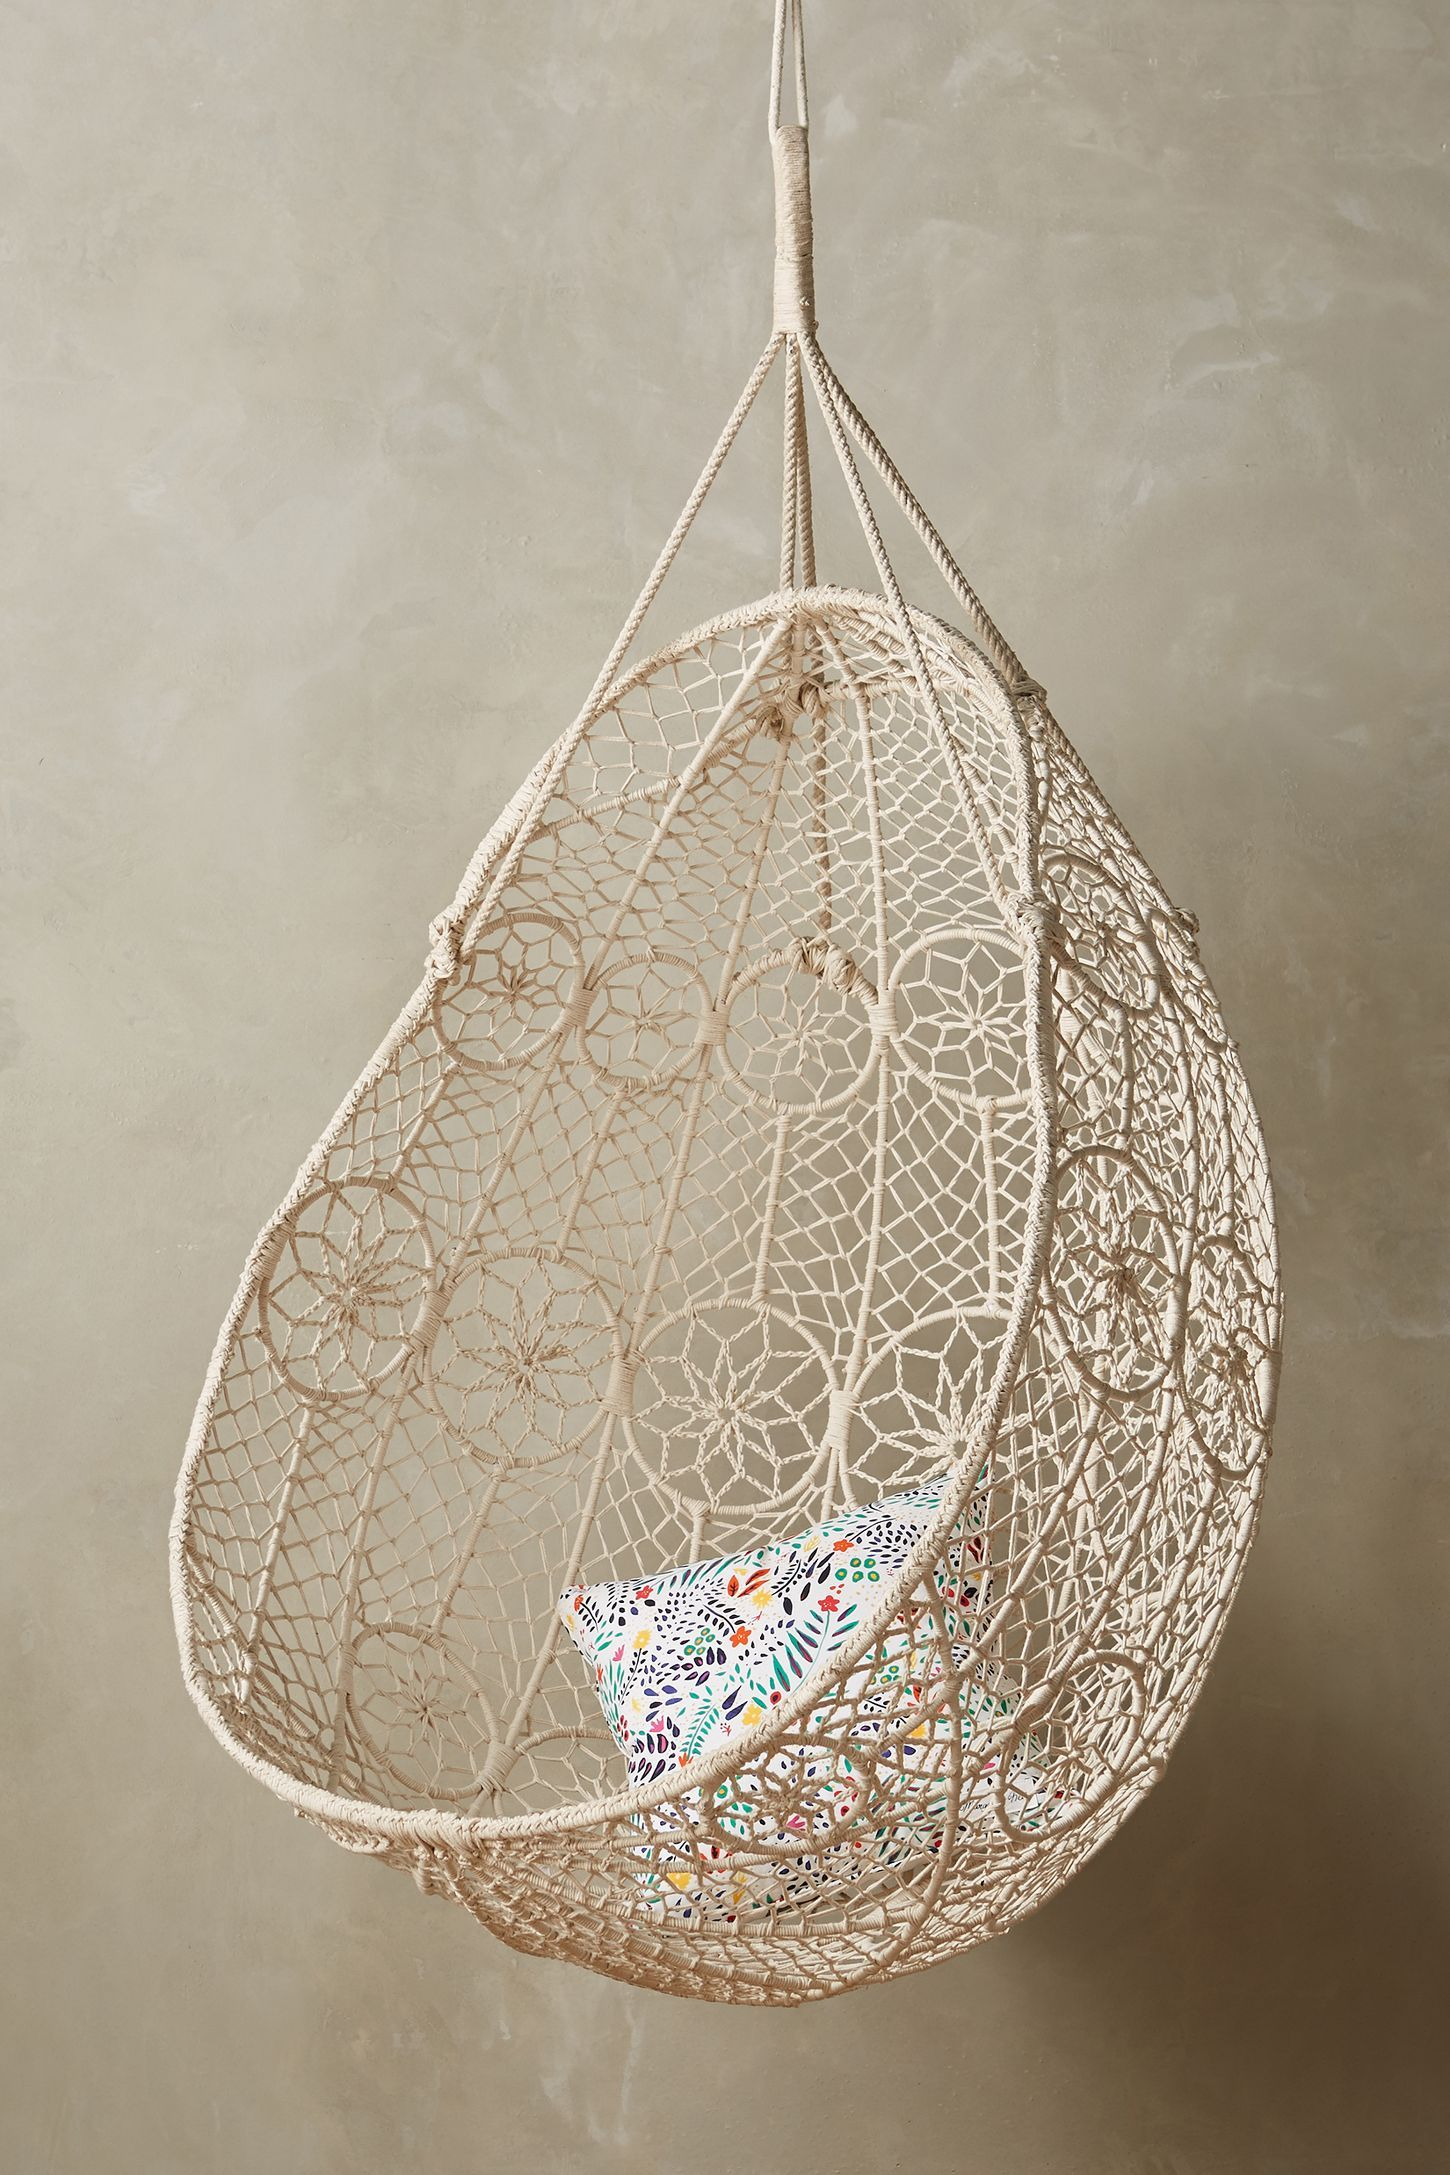 Swing Chair Home Town King Backyard Store Image Result For Egg Anthropologie Cabbage In 2018